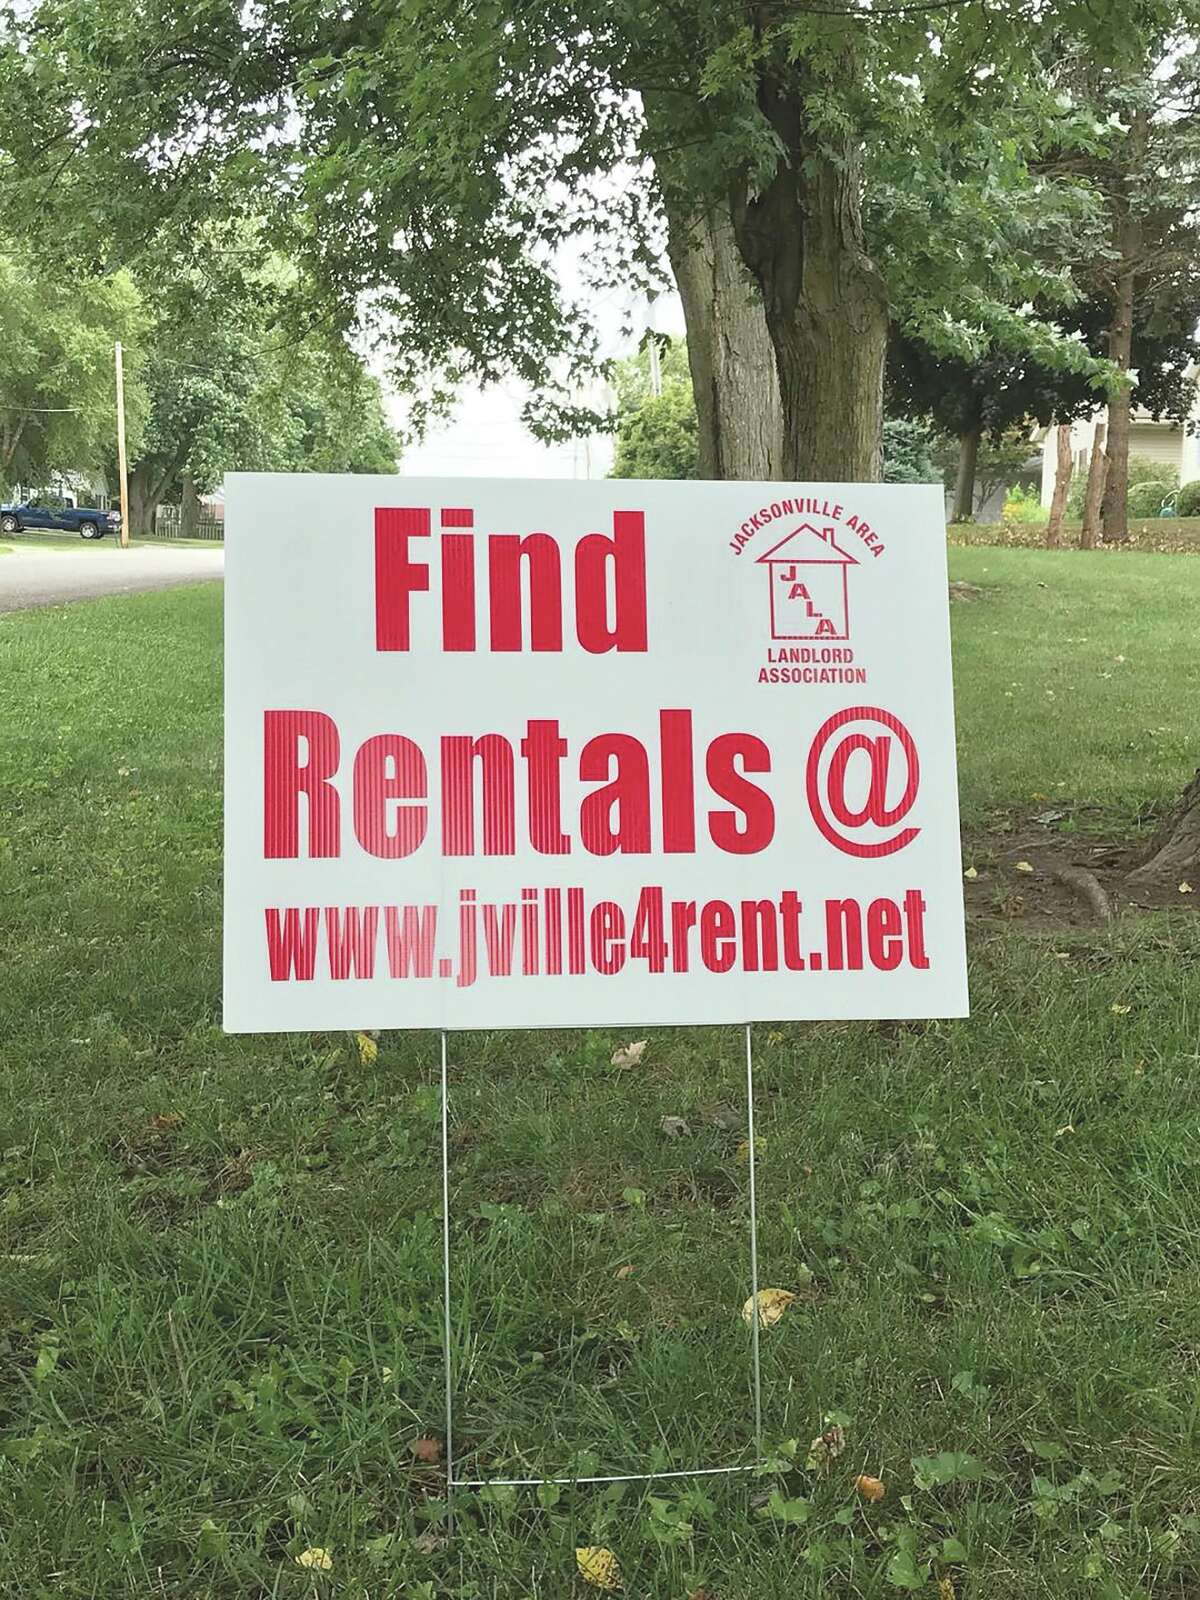 A jville4rent sign advertises a rental property on South Diamond Street in Jacksonville.